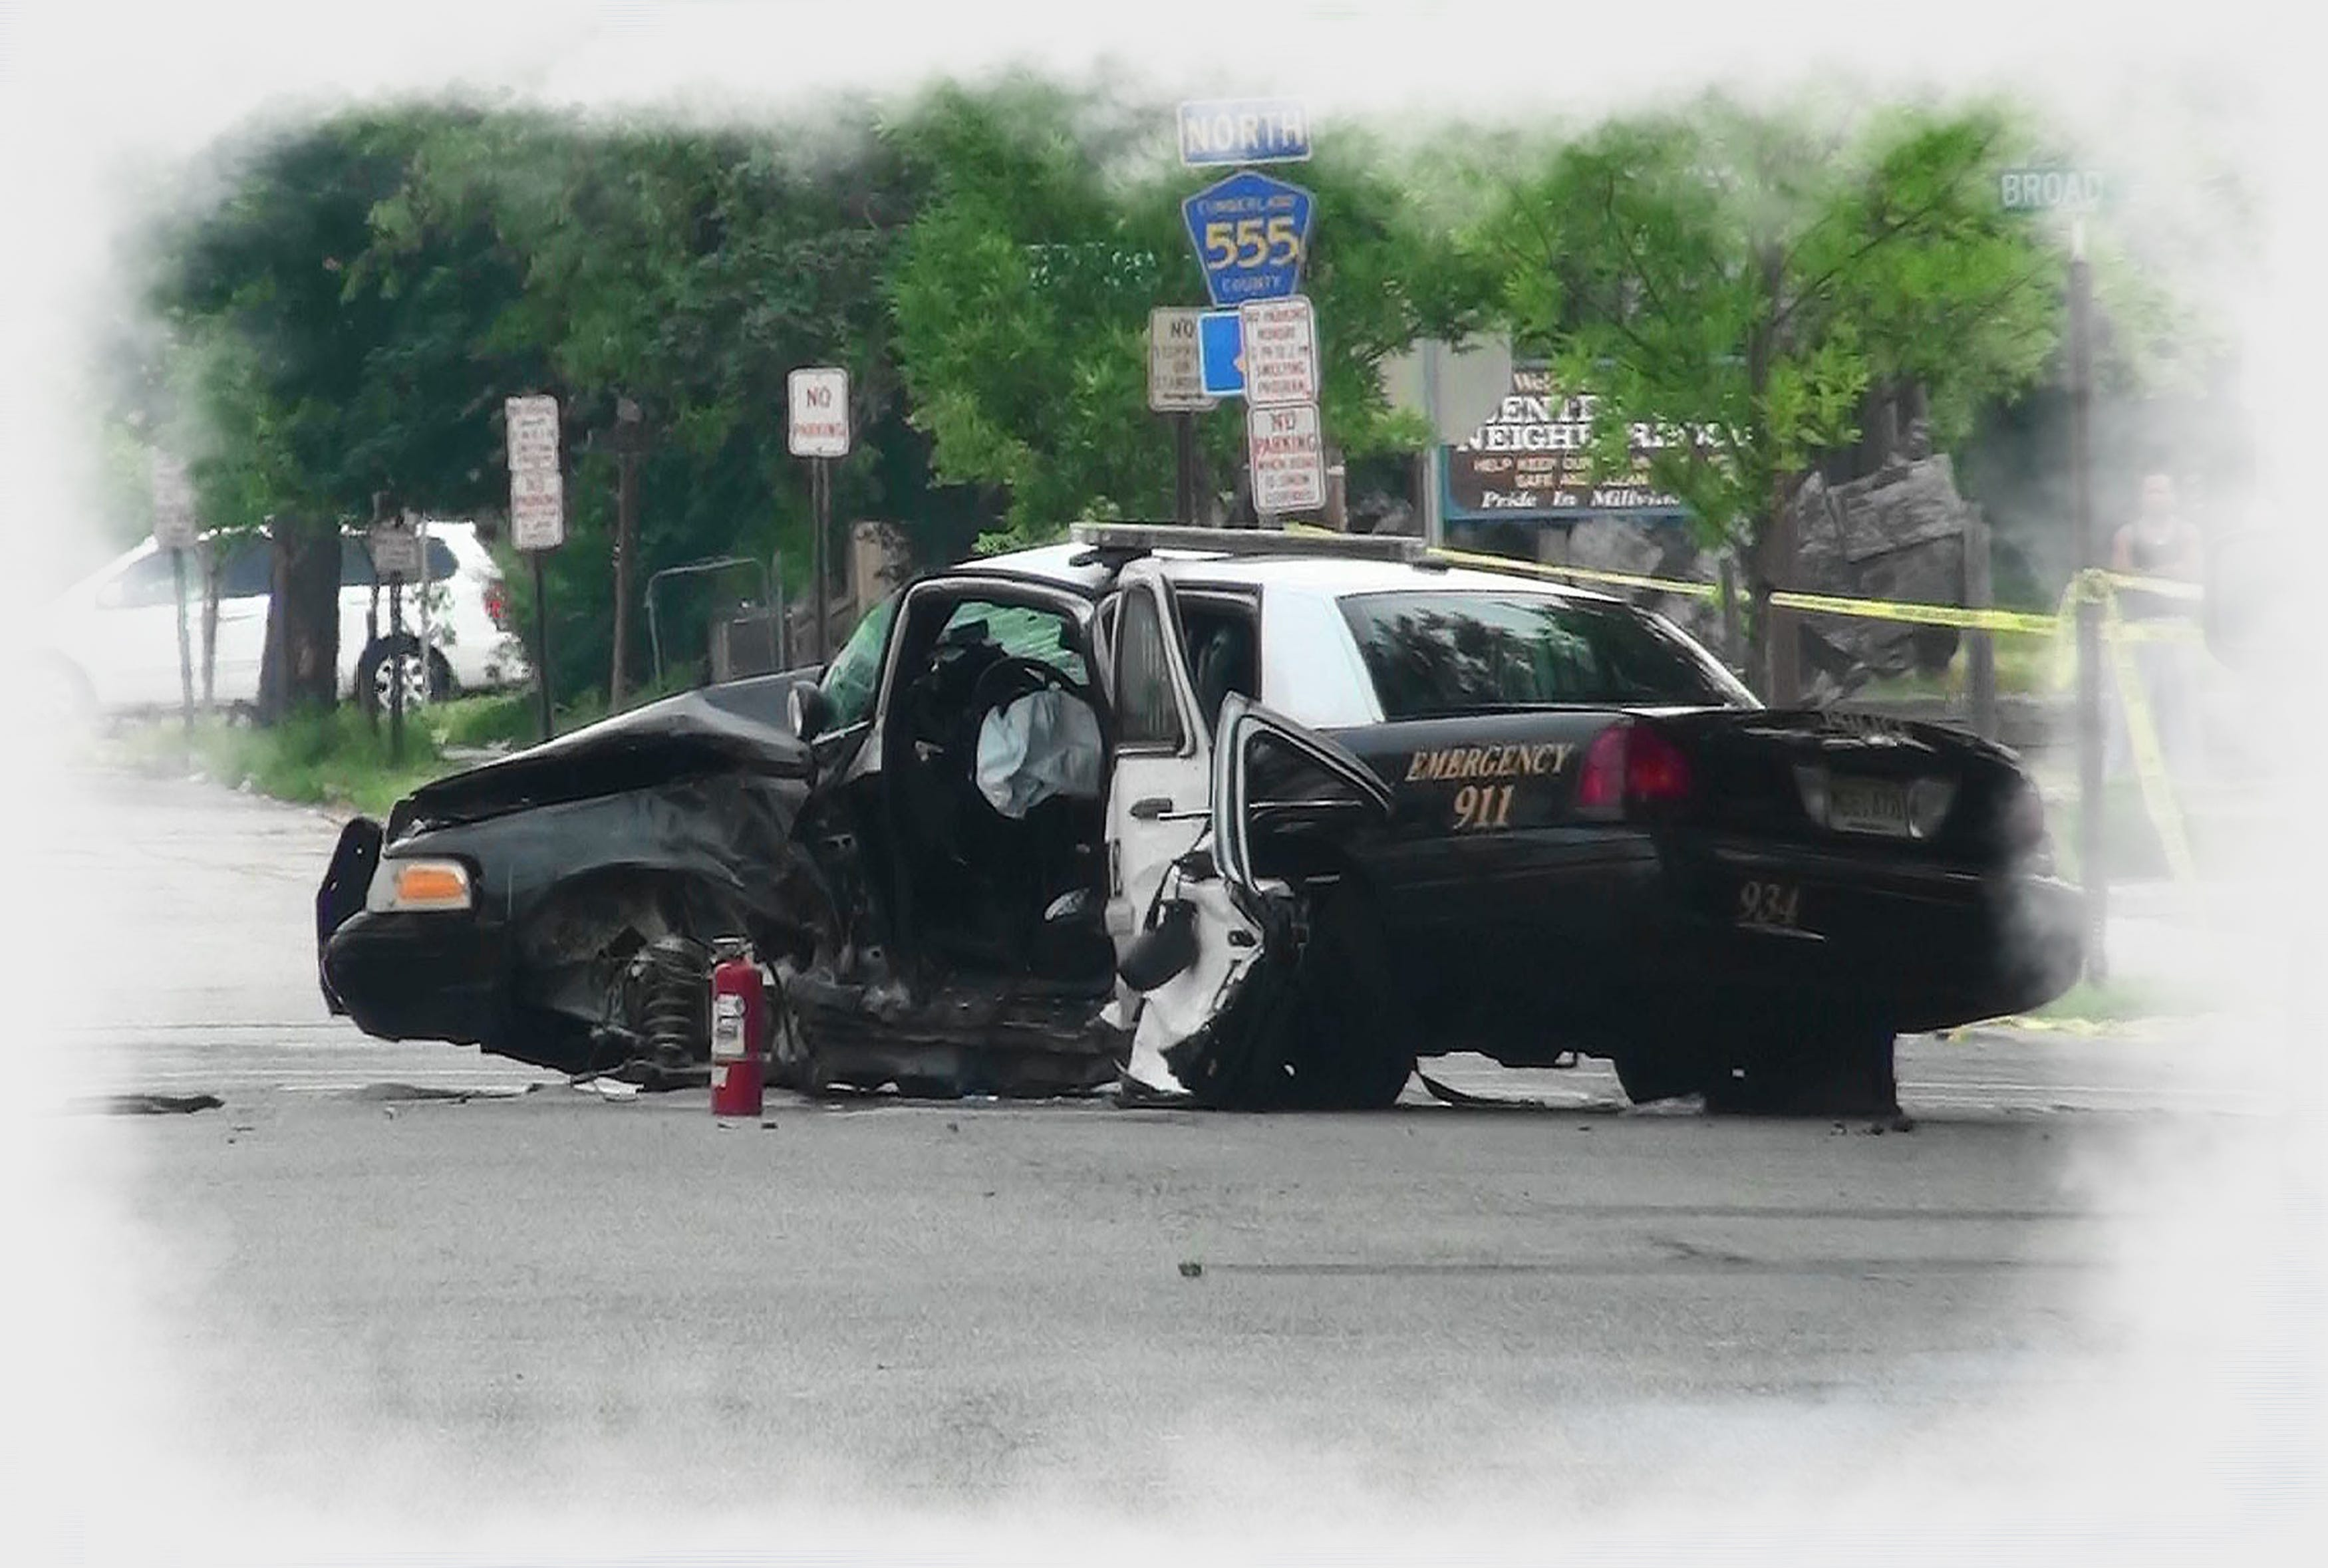 A heavily damaged Millville police cruiser rests near Broad and 3rd streets on Sunday morning, hours after a crash in which Officer Christopher Reeves was killed while on duty. Another officer in the car was seriously injured. Photo/Drew Eskridge Police cruiser crash in which Millville police officer Christopher Reeves was killed.